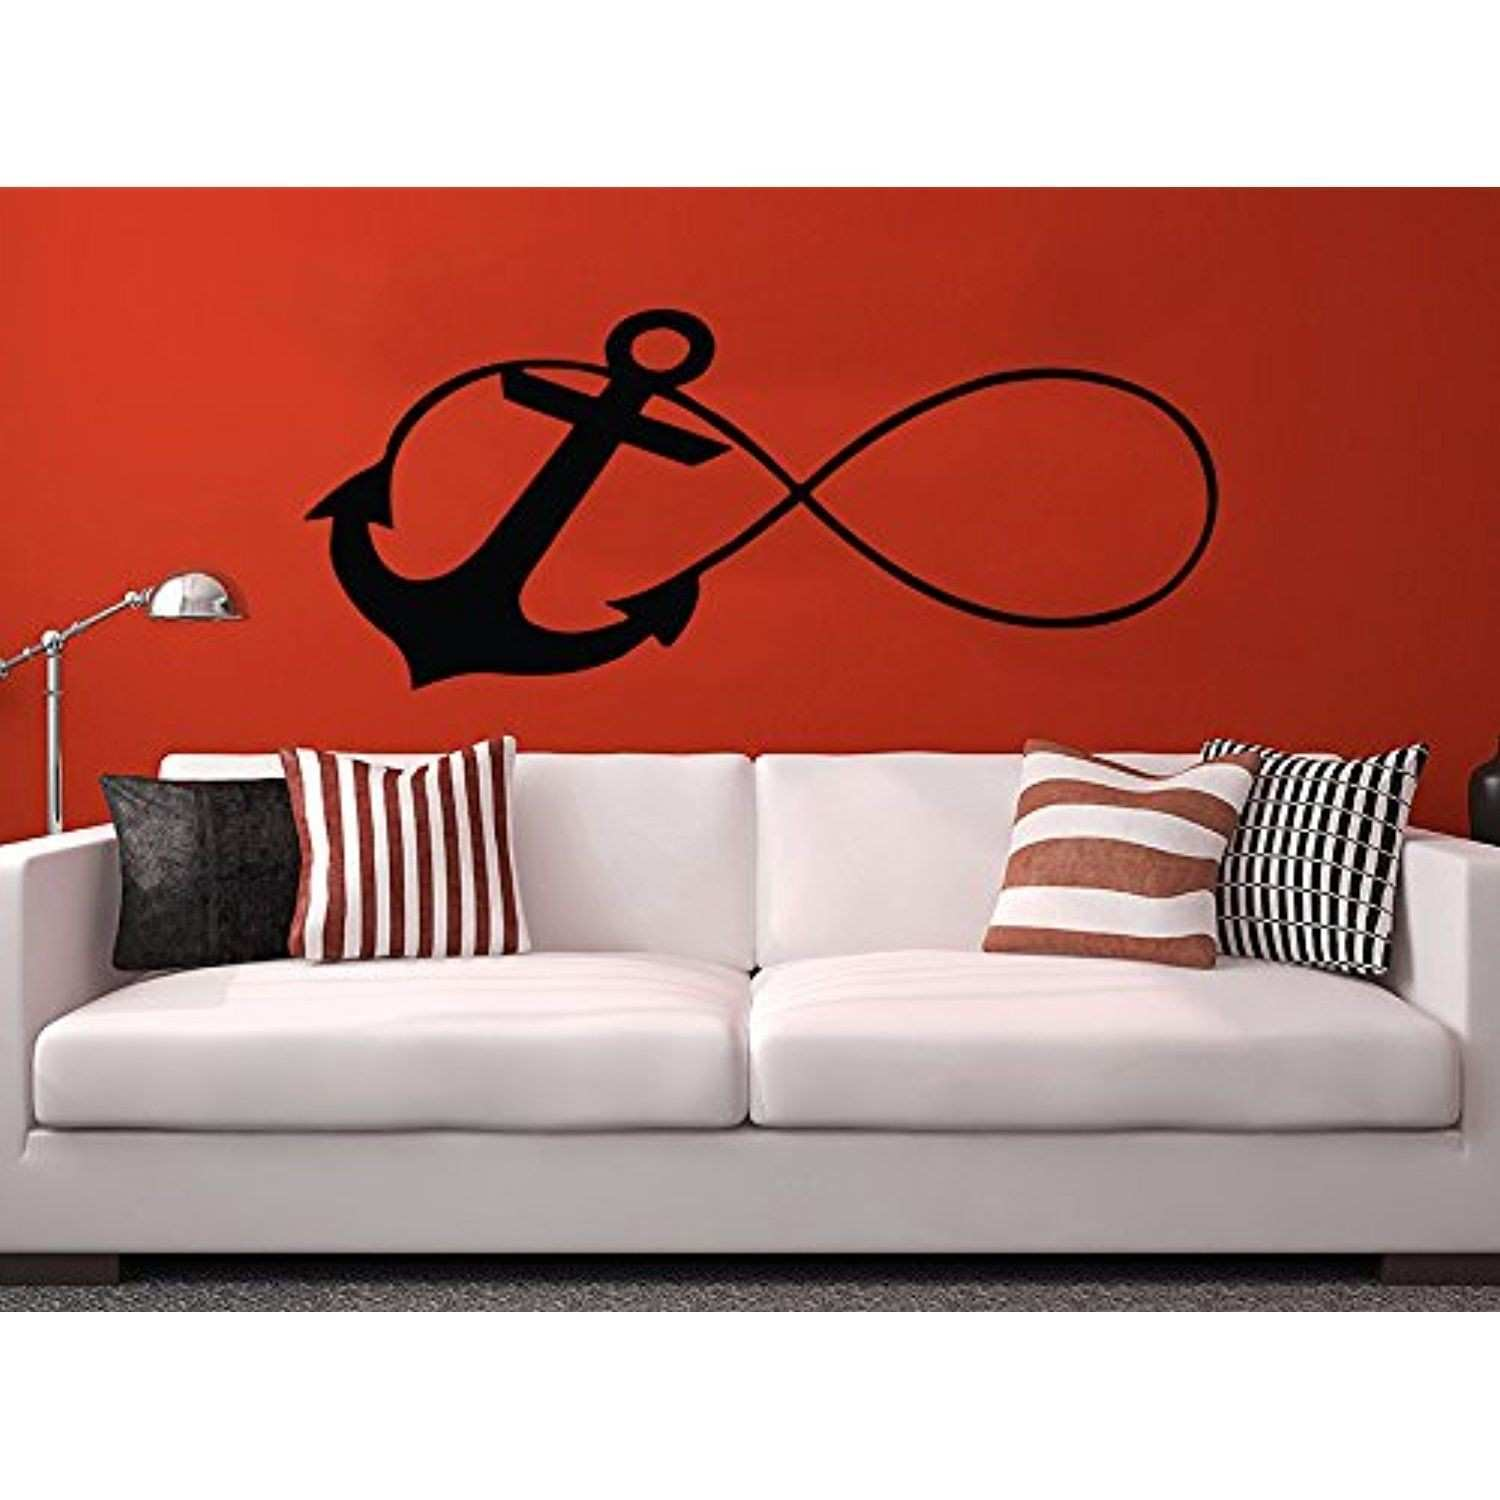 Wall Decal Infinity Sign Anchor Vinyl Sticker Decals Nursery Baby